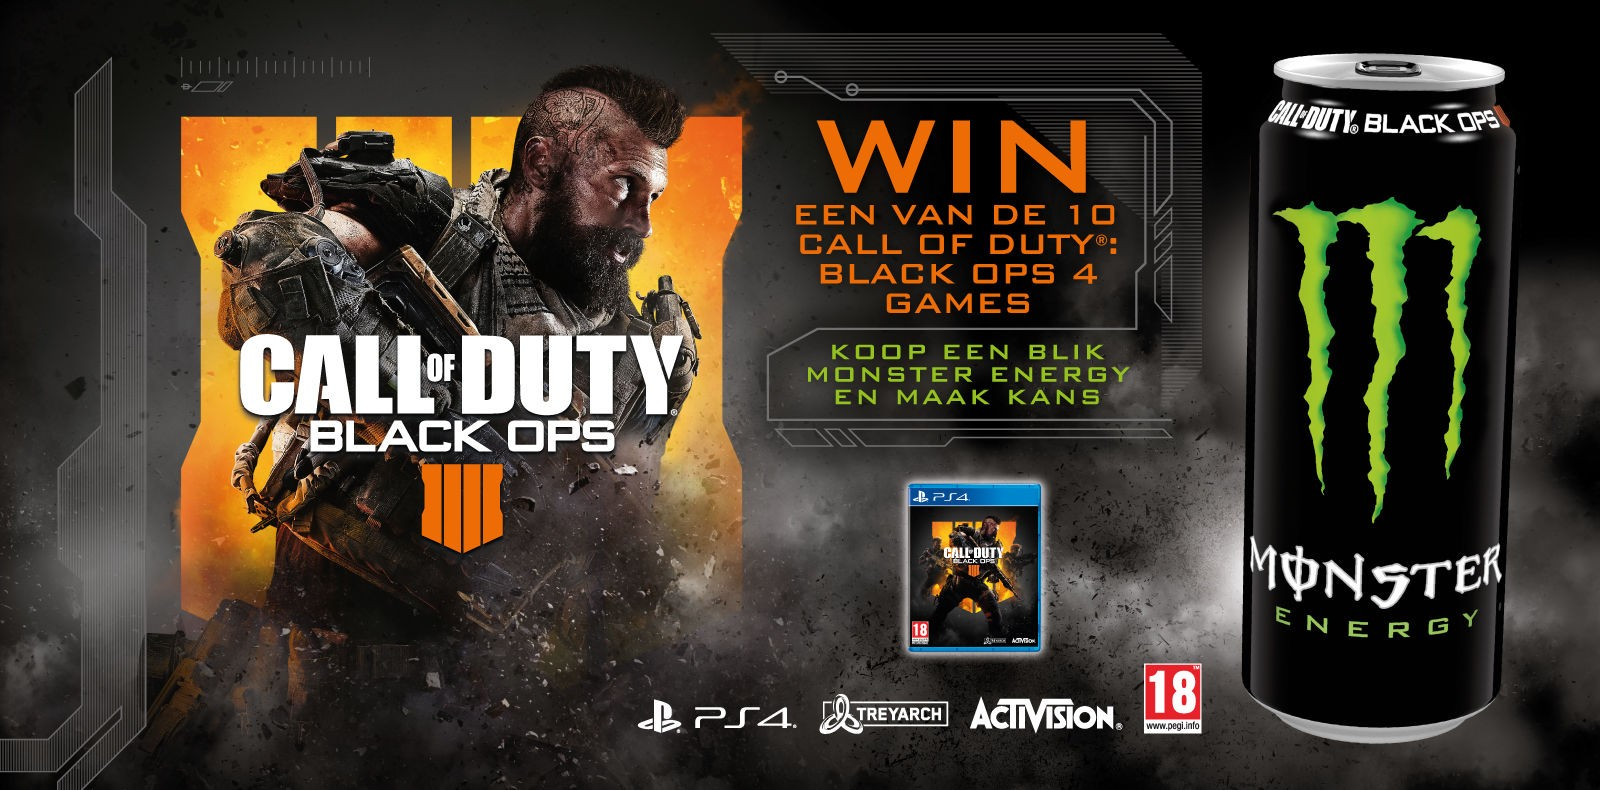 Call of Duty: Black Ops 4 - PS4 - Giveaway - BP